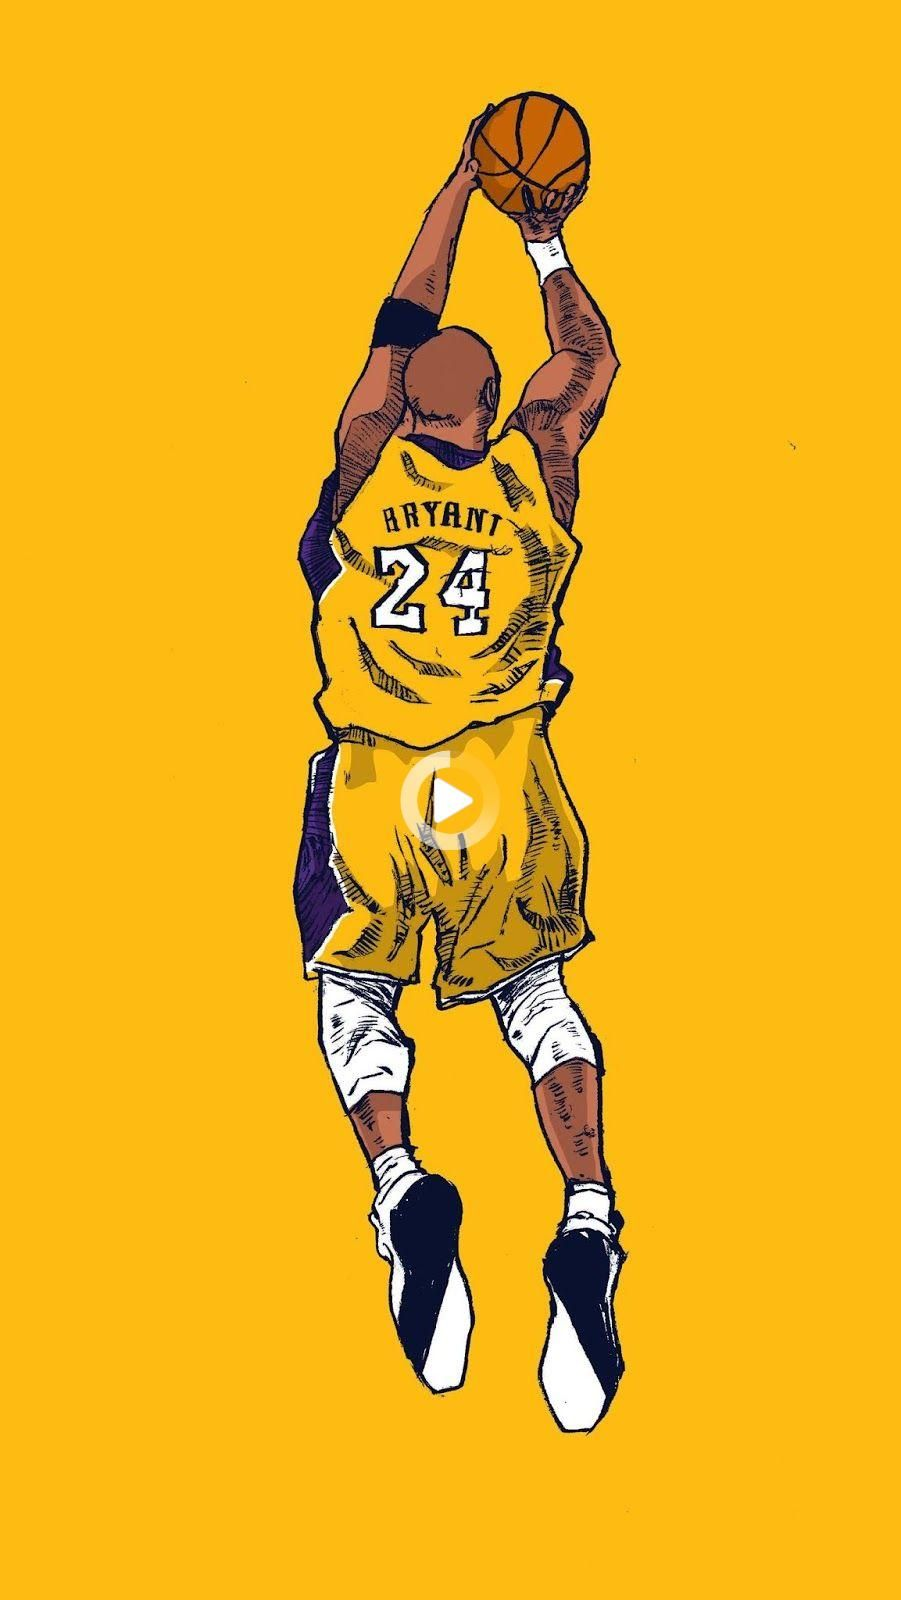 2020 Wallpapers Best Wallpapers Collection Iphone Wallpapers Backgrounds In 2021 Kobe Bryant Wallpaper Kobe Bryant Tattoos Kobe Bryant Poster